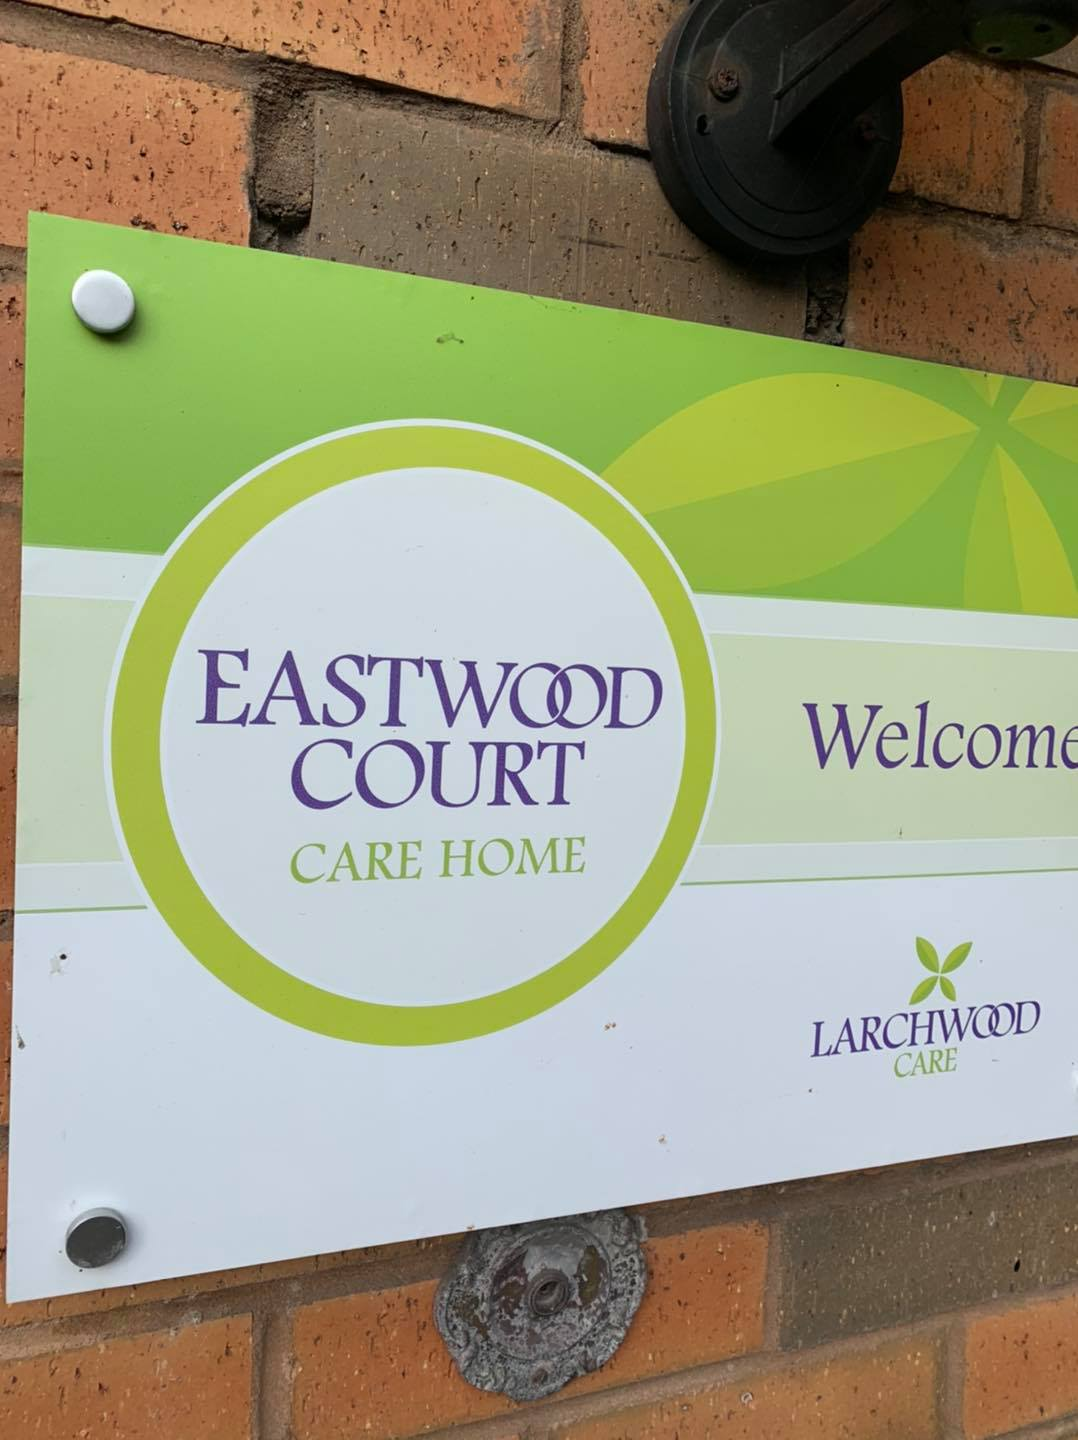 Eastwood Court Care Home